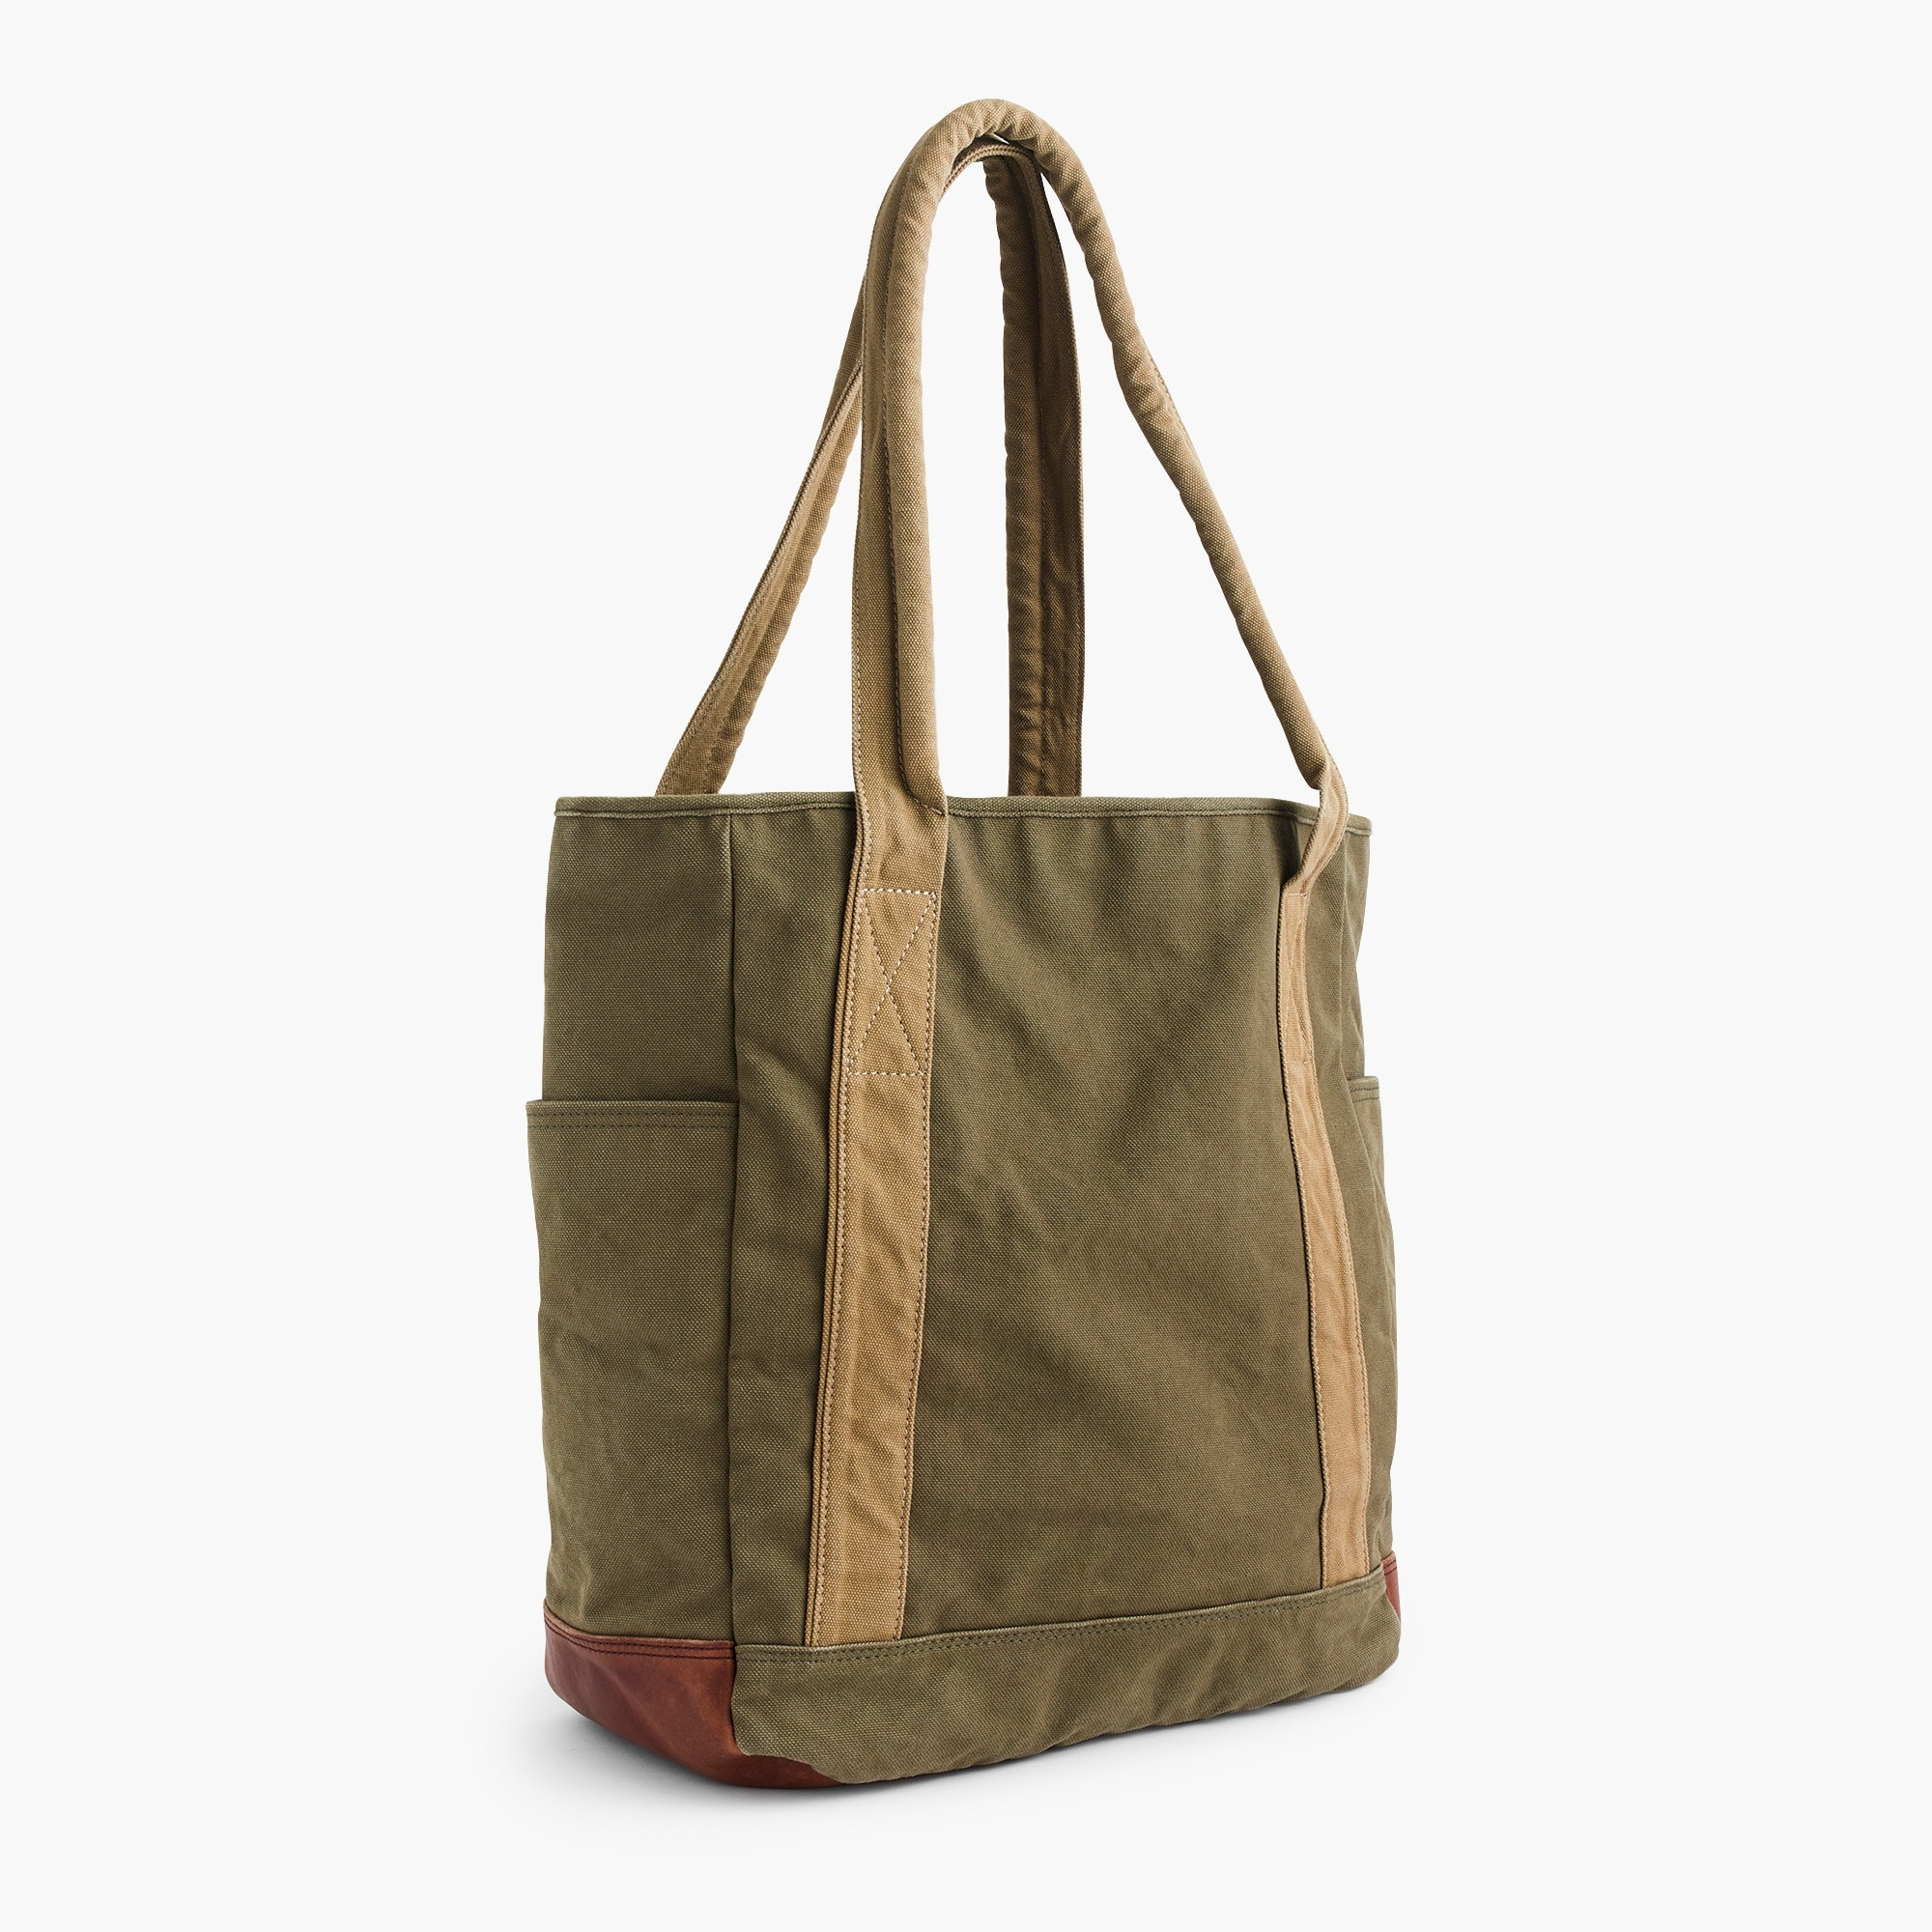 Image 1 for Wallace & Barnes canvas tote